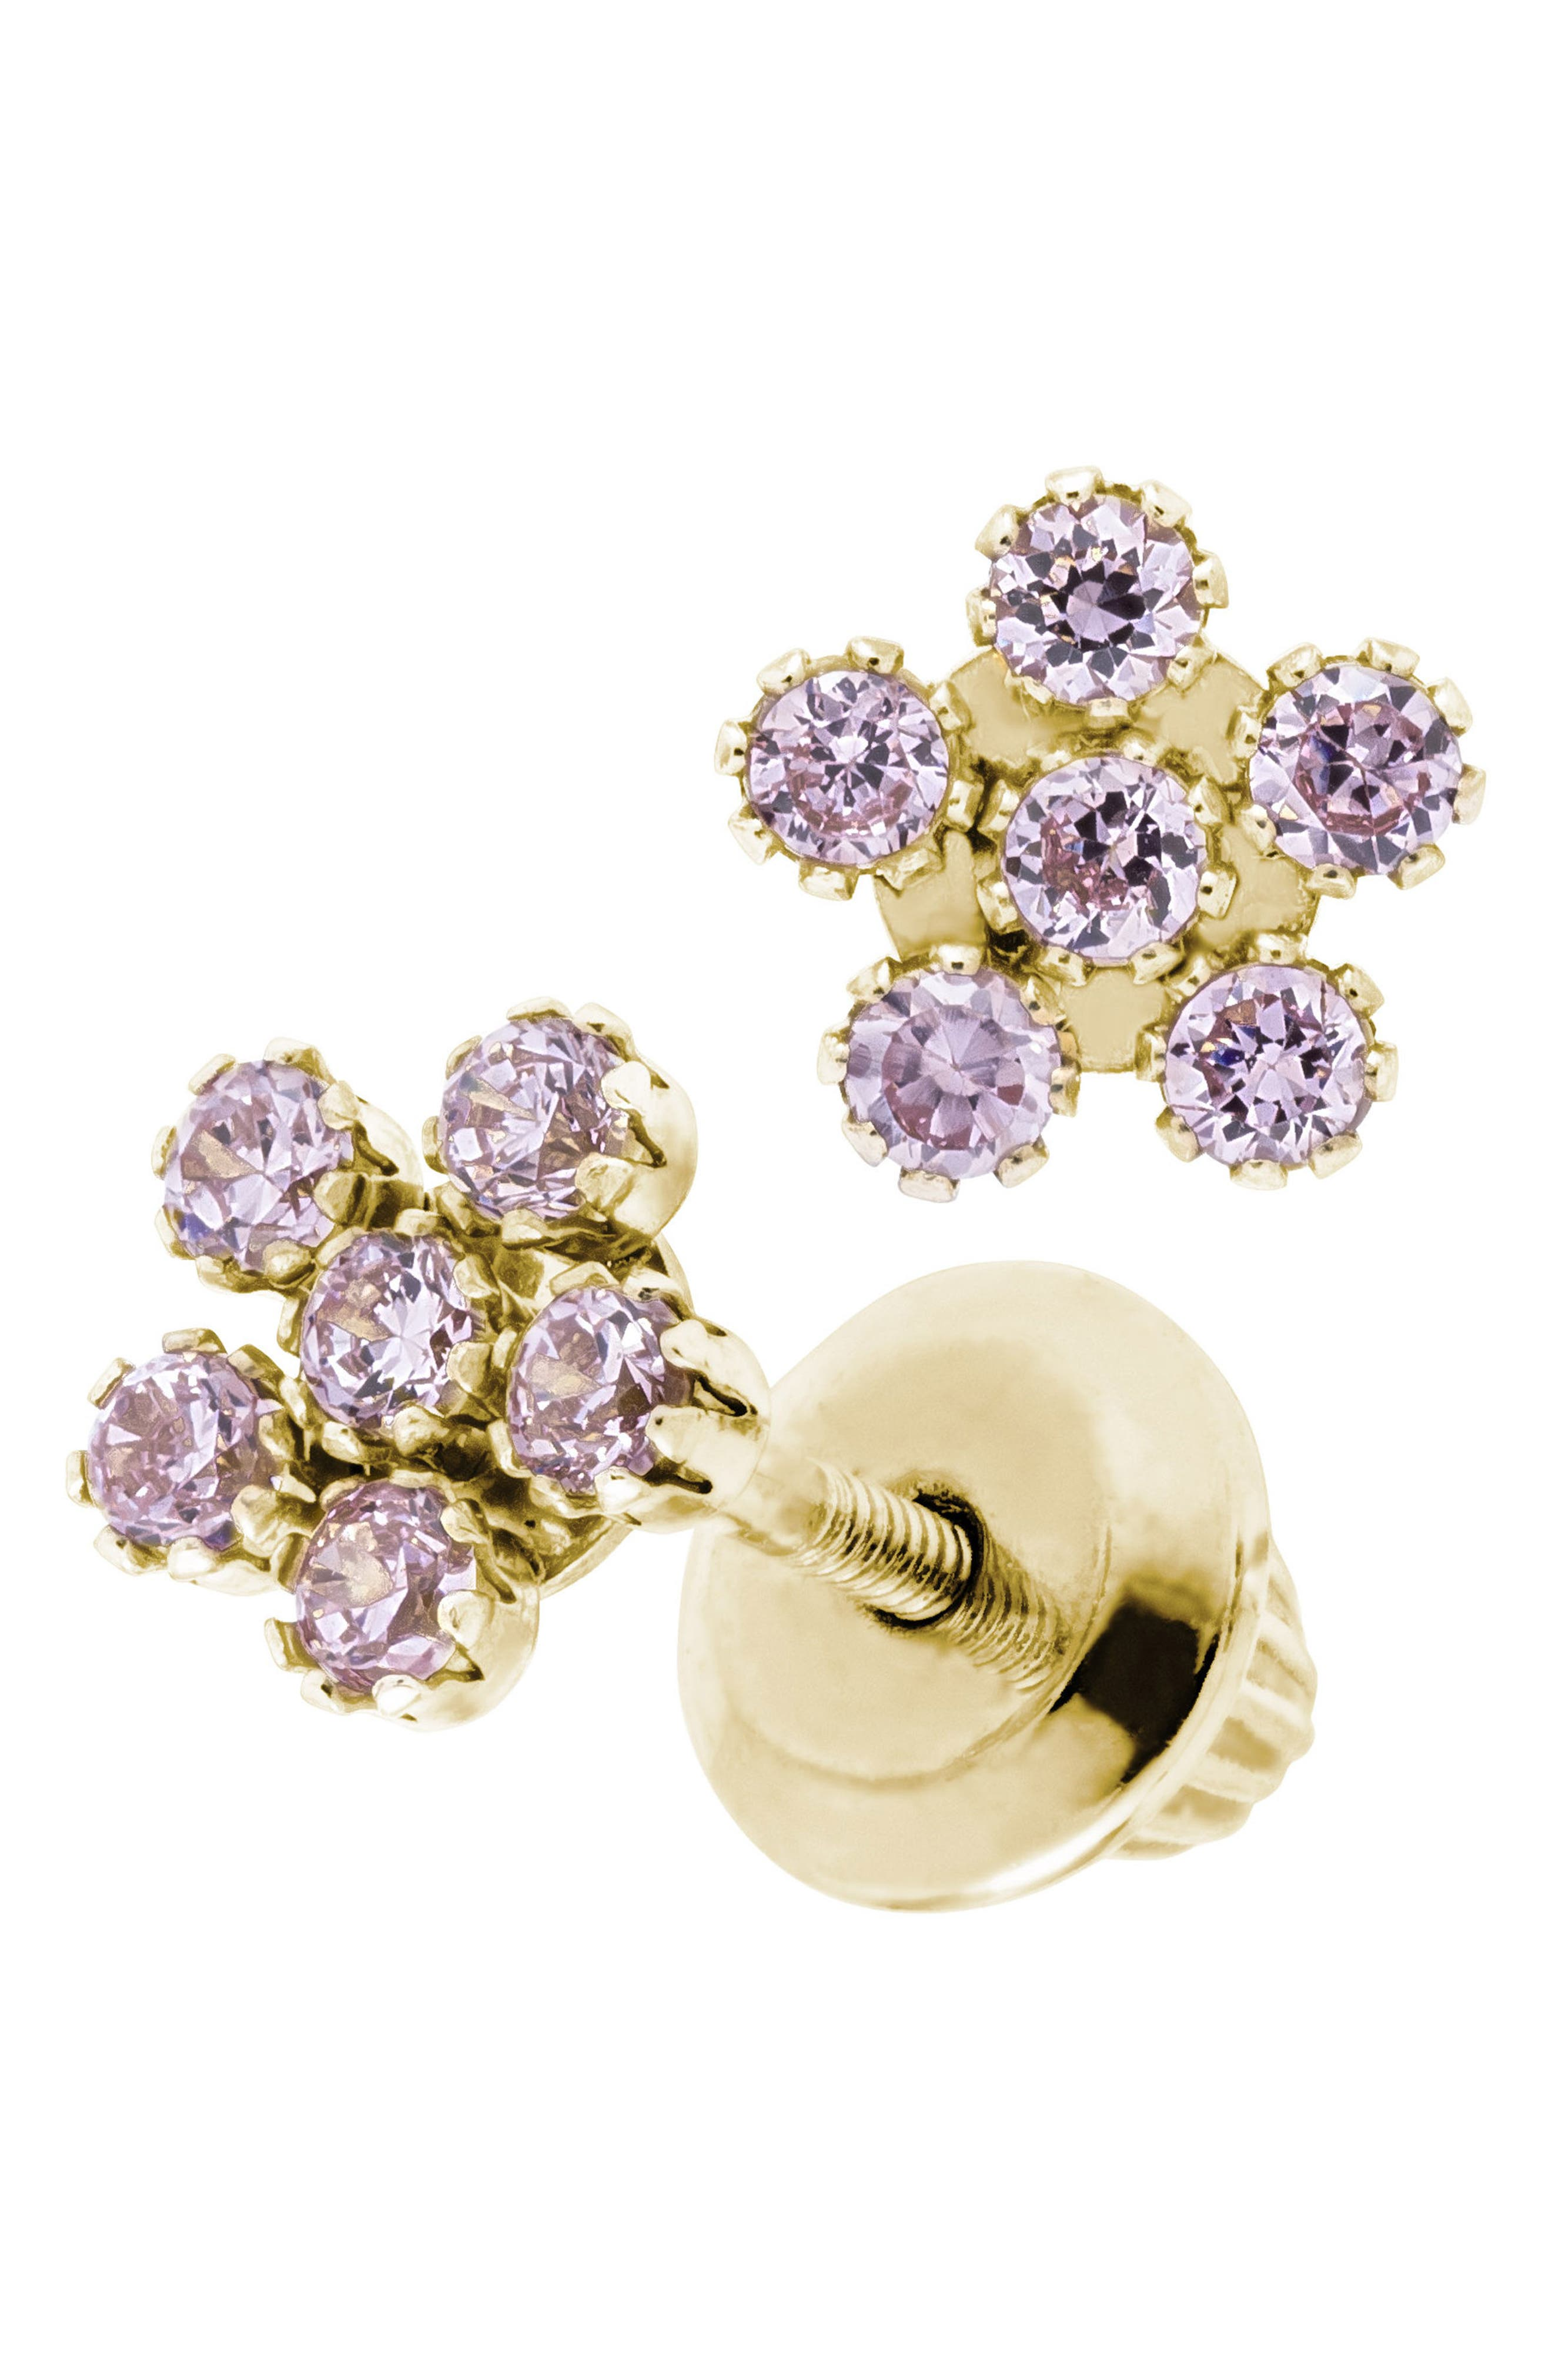 14k Gold & Cubic Zirconia Flower Earrings,                             Alternate thumbnail 2, color,                             PINK/ GOLD